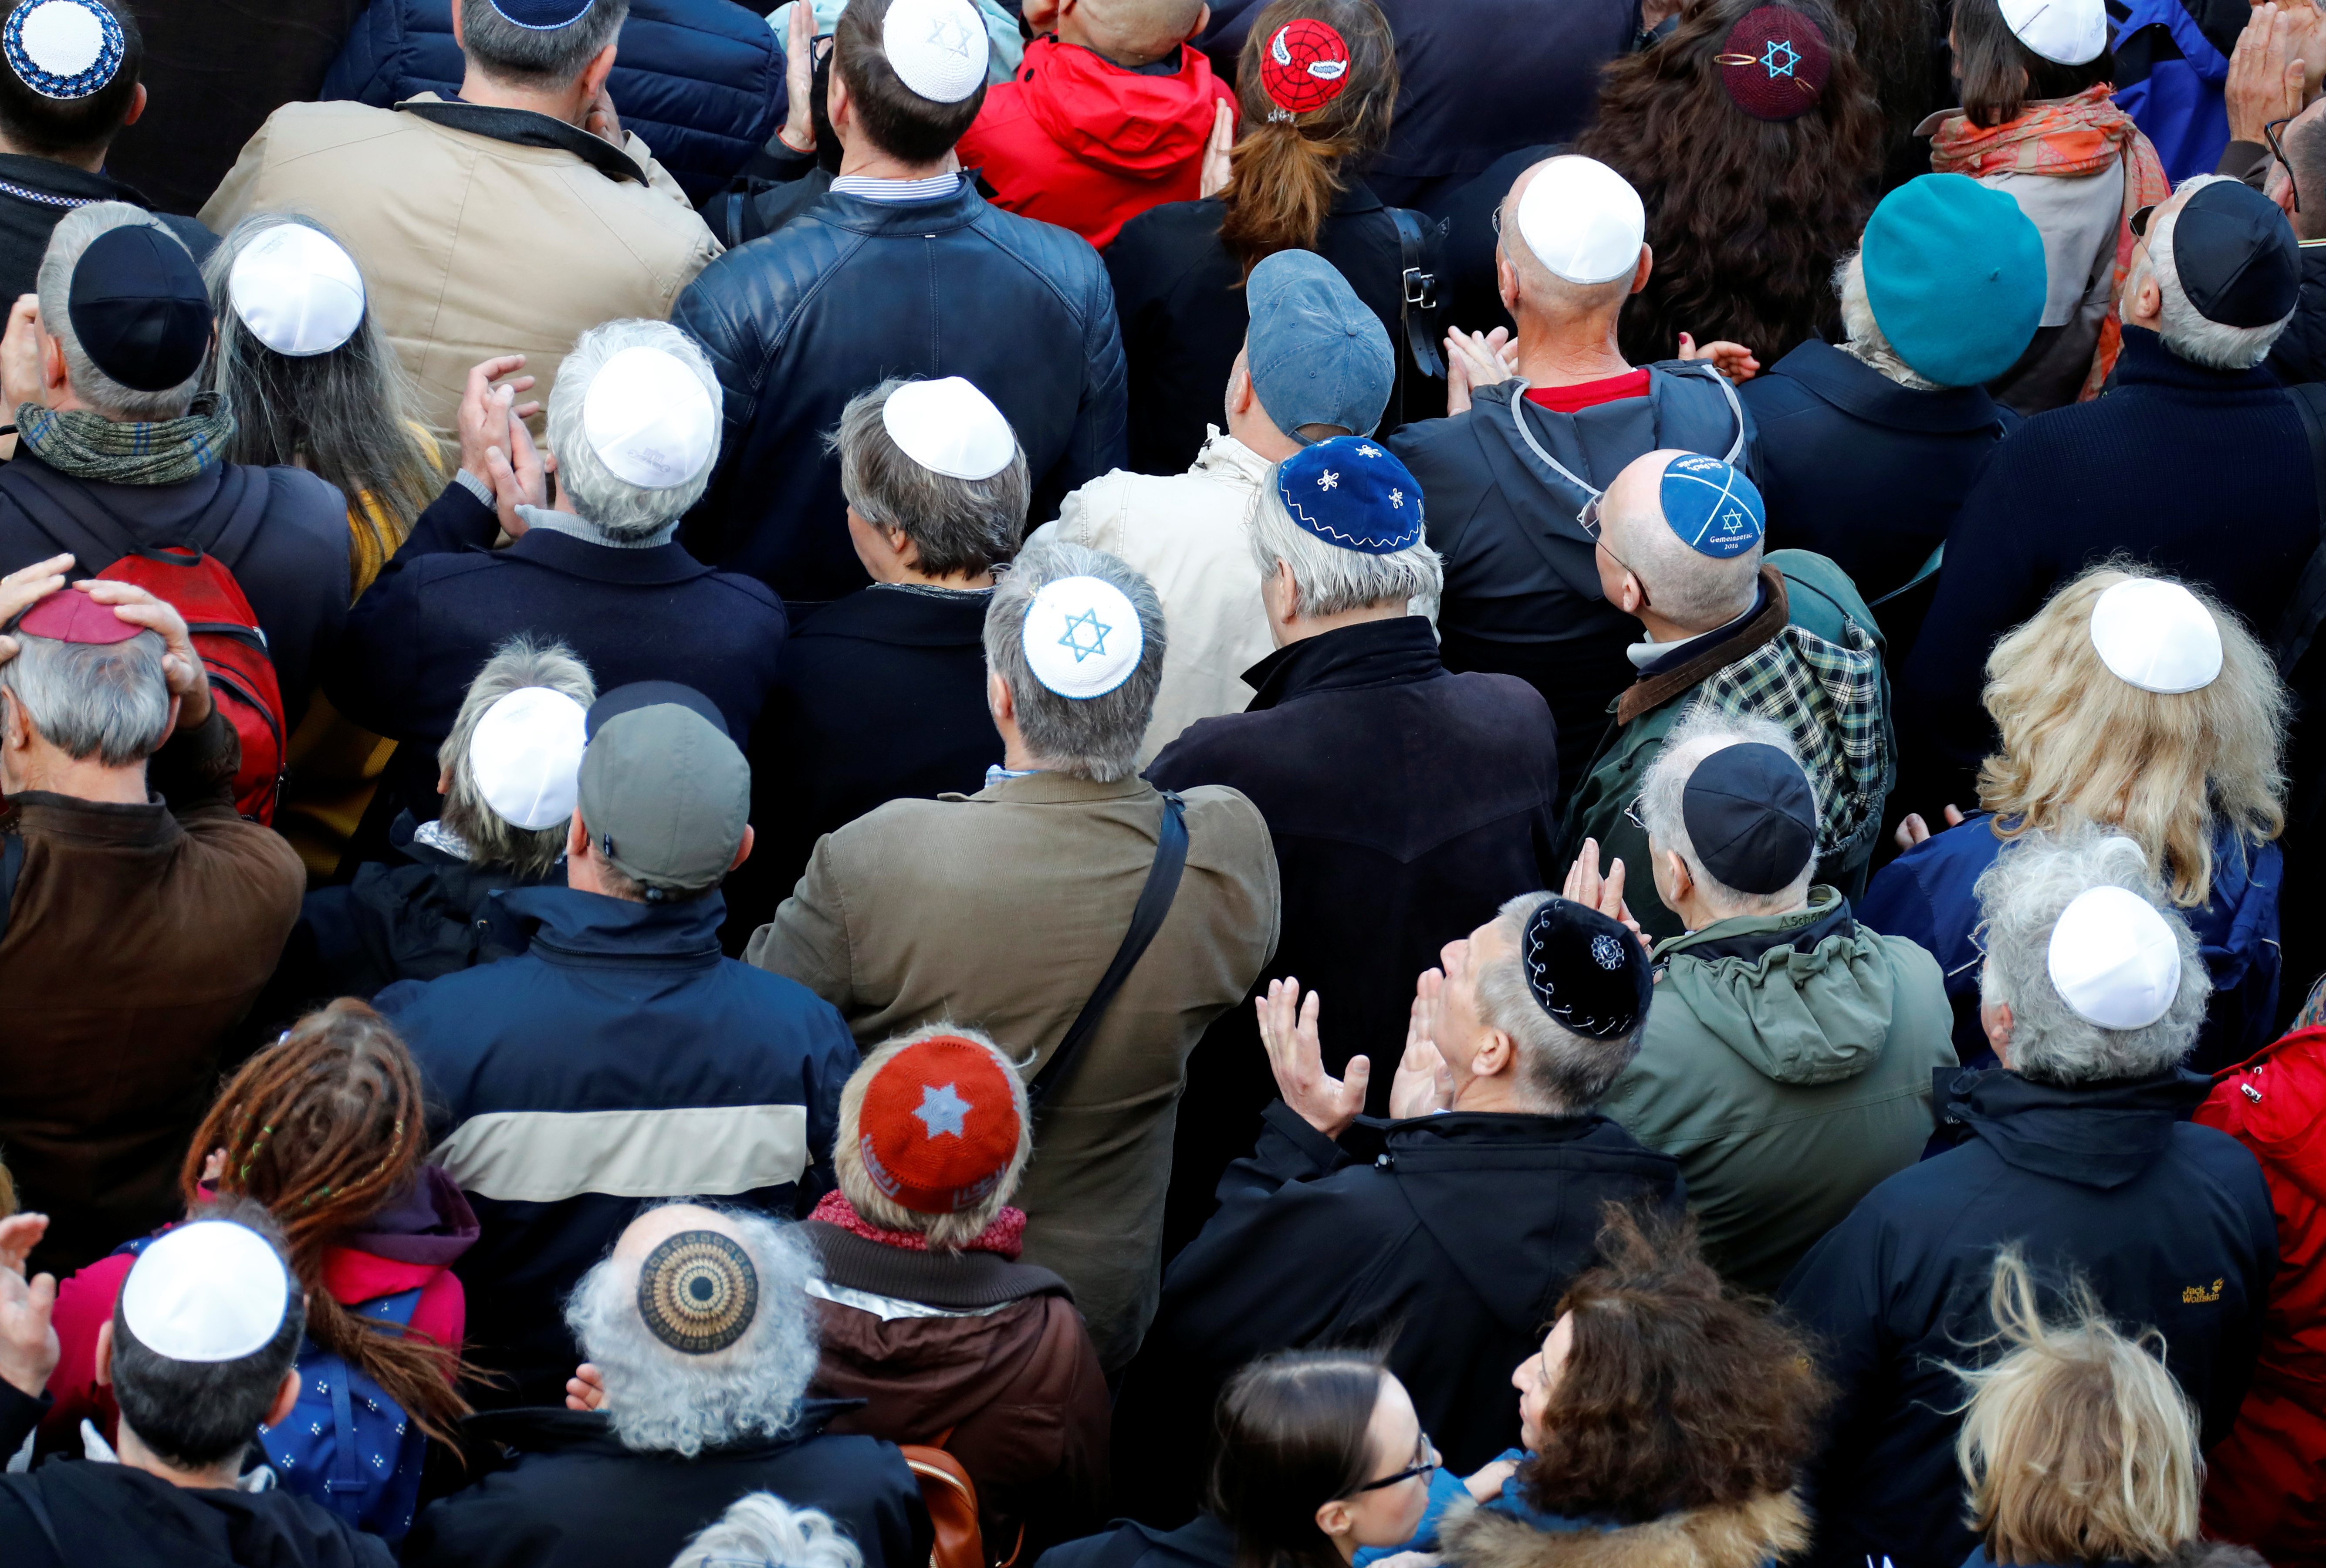 People from different faiths wear kippas as they attend a demonstration on April 25th in front of a Jewish synagogue, to denounce an anti-Semitic attack on a young man wearing a kippa in Berlin earlier in the month.